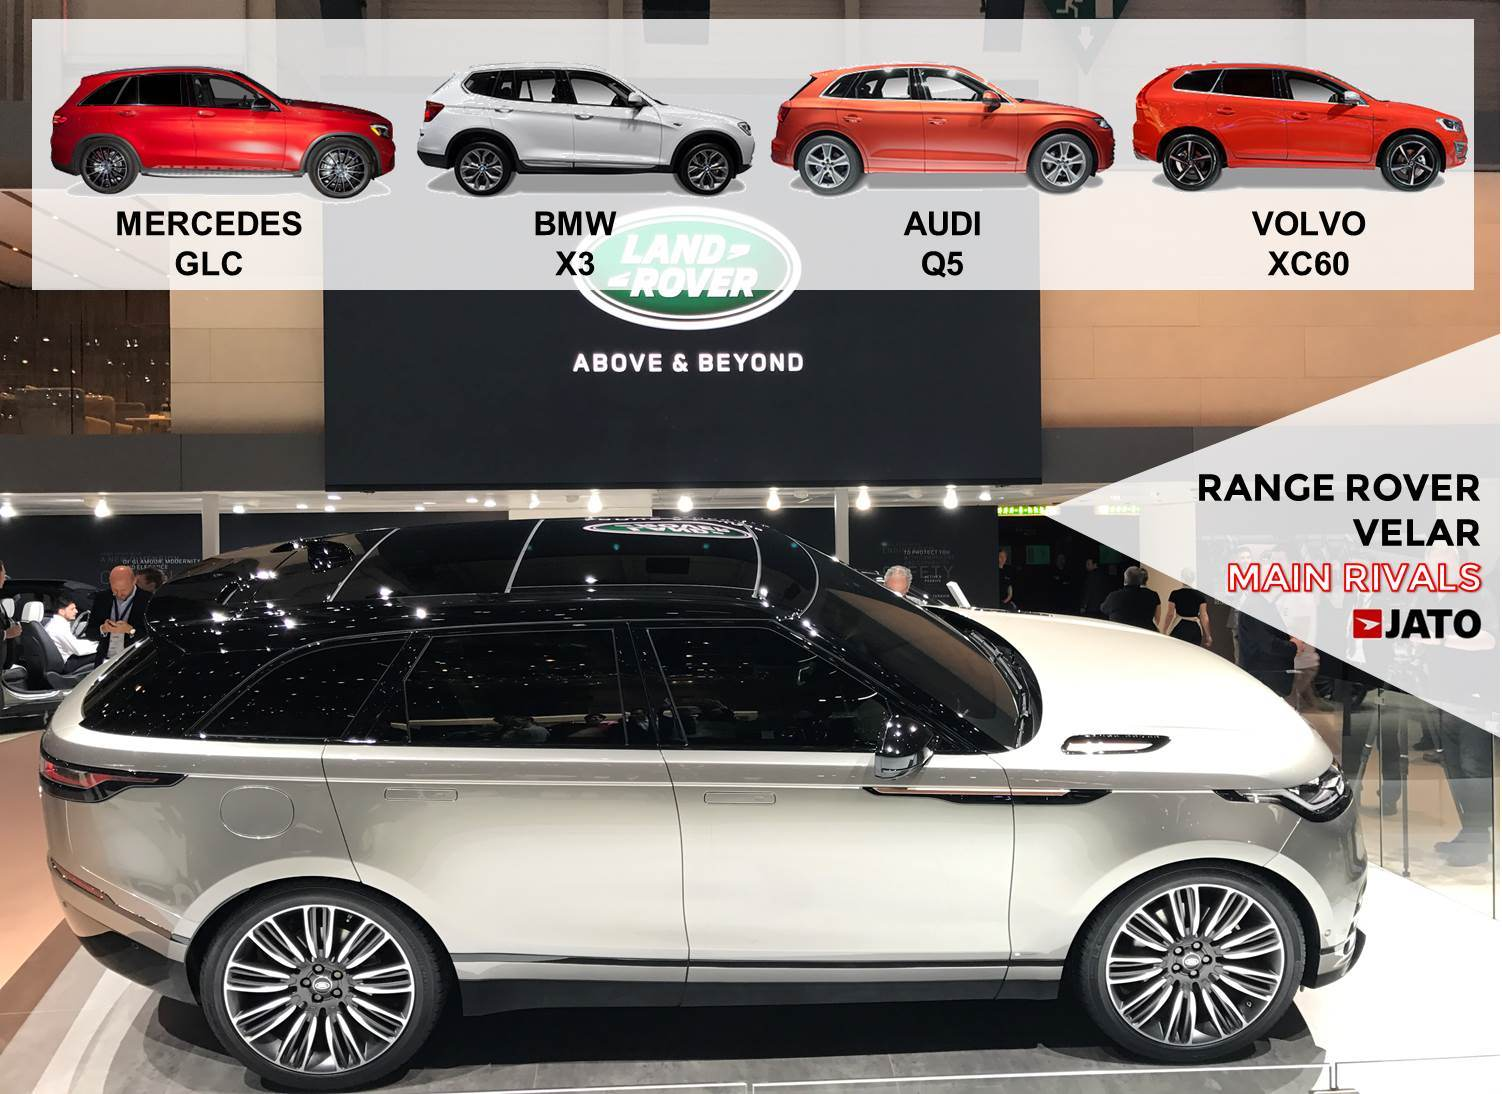 With its 4.8m length, the Velar will sit in the upper level of the premium D-SUV segment. It is expected to add sales volume to Land Rover as it won't cannibalize with the Discovery Sport. Both of them should post similar annual sales in Europe from 2018.